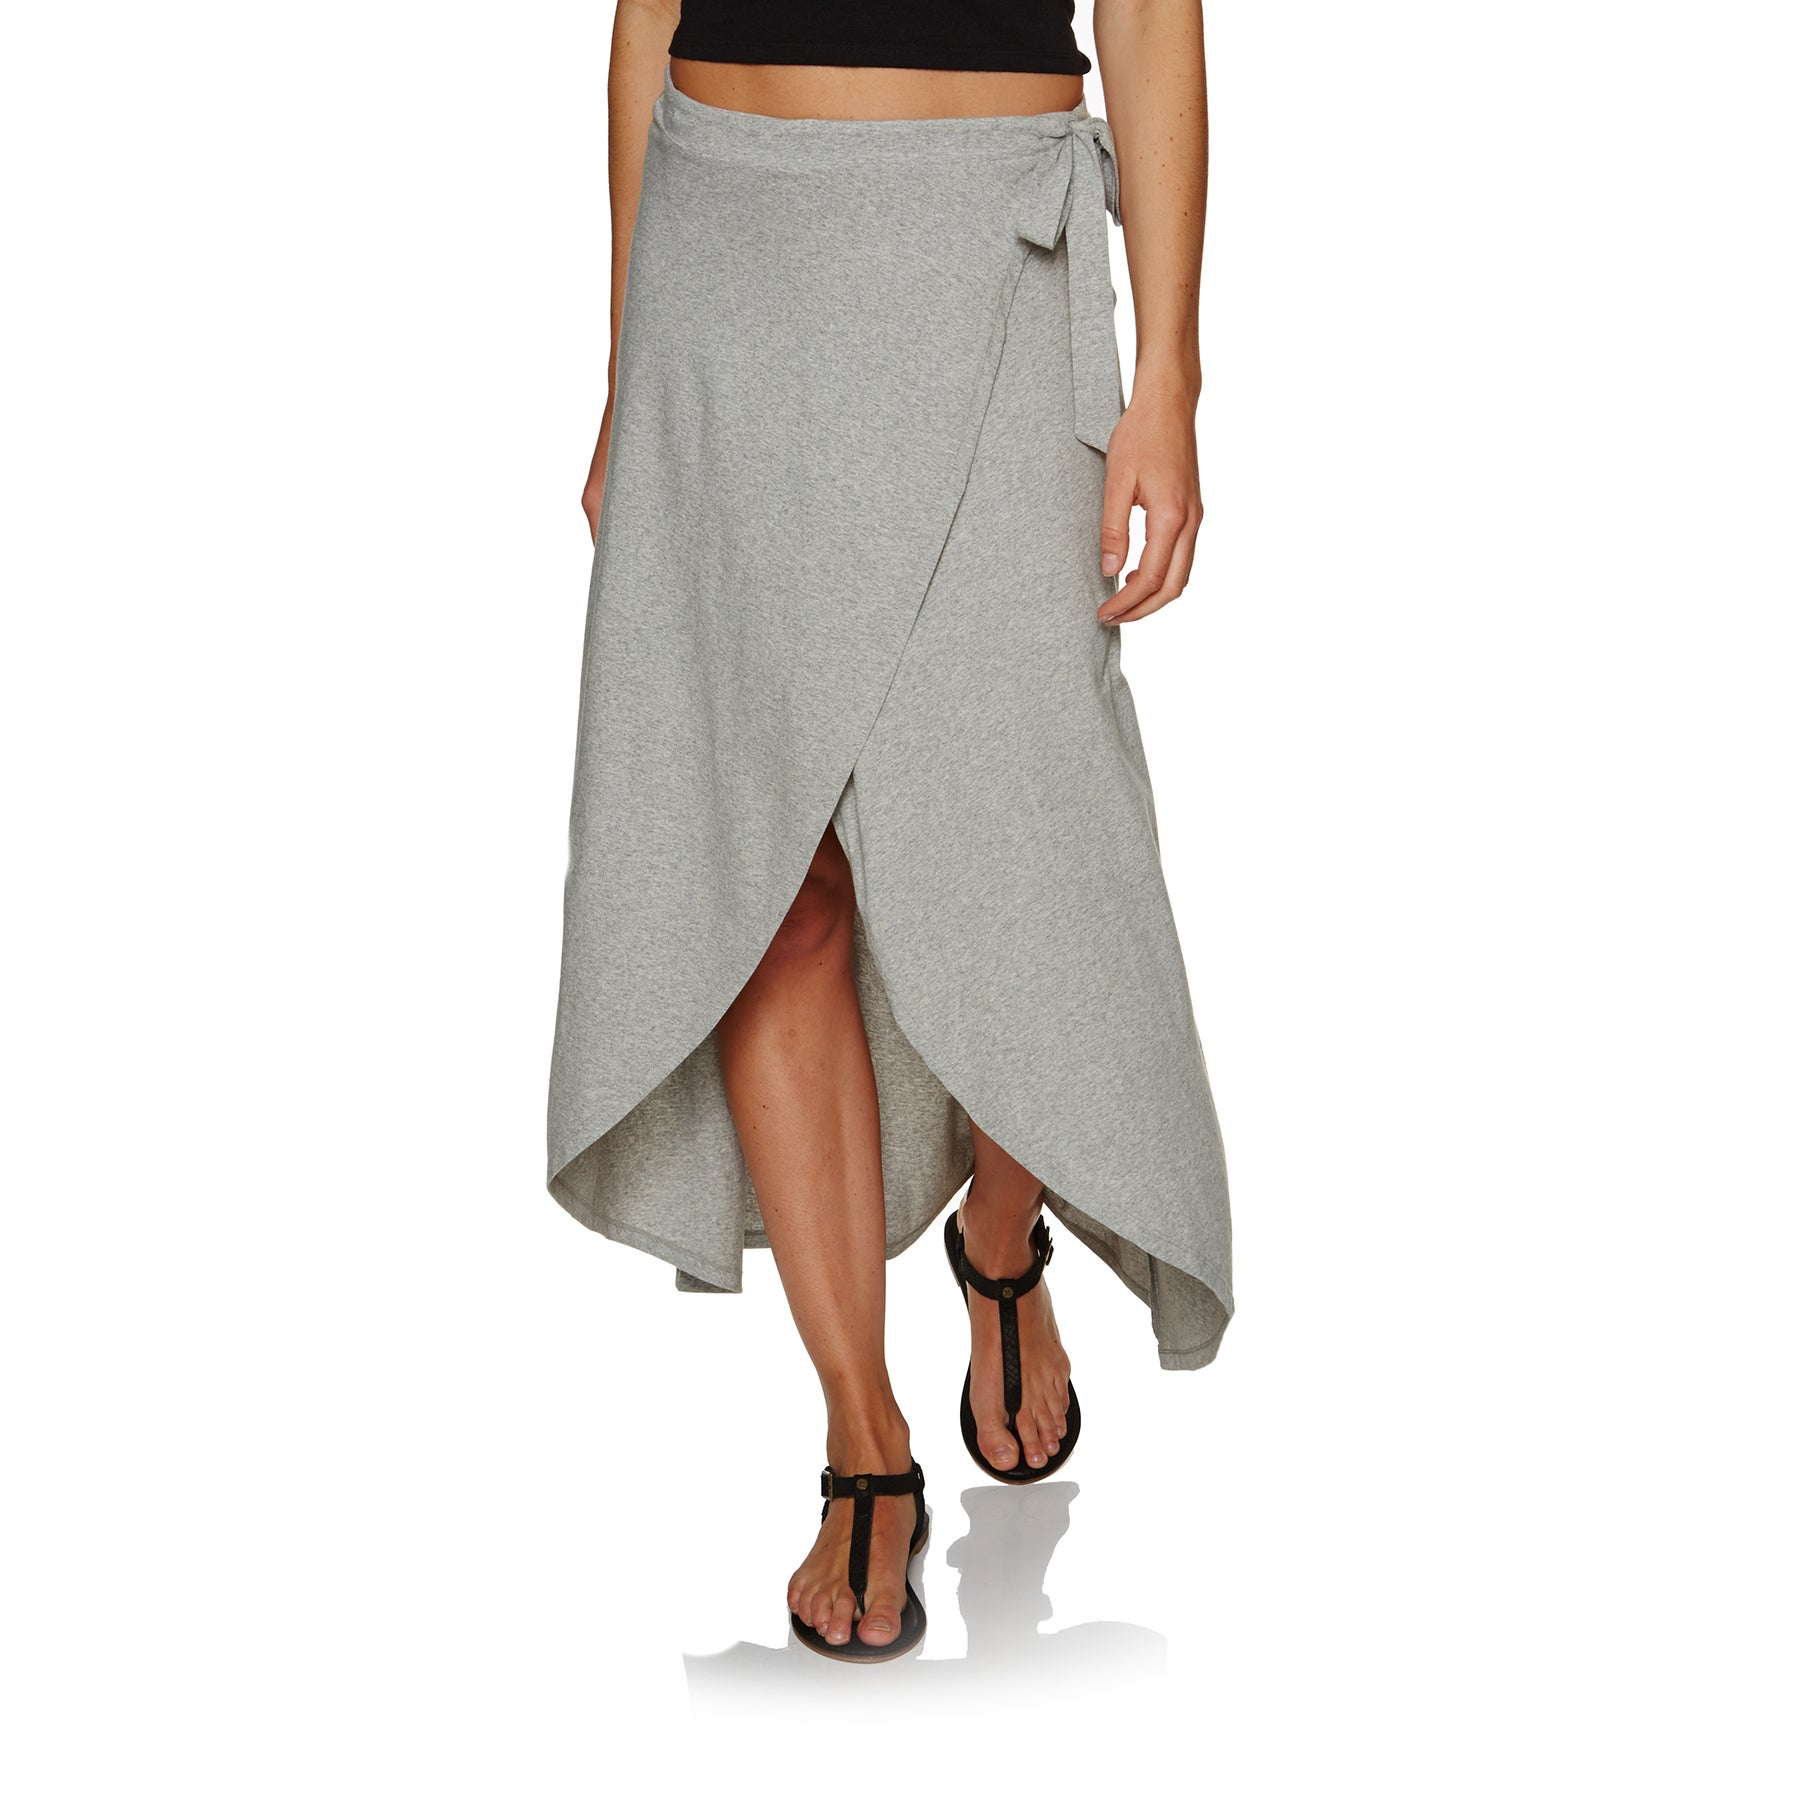 Roxy Everlasting Afte Skirt - Heritage Heather